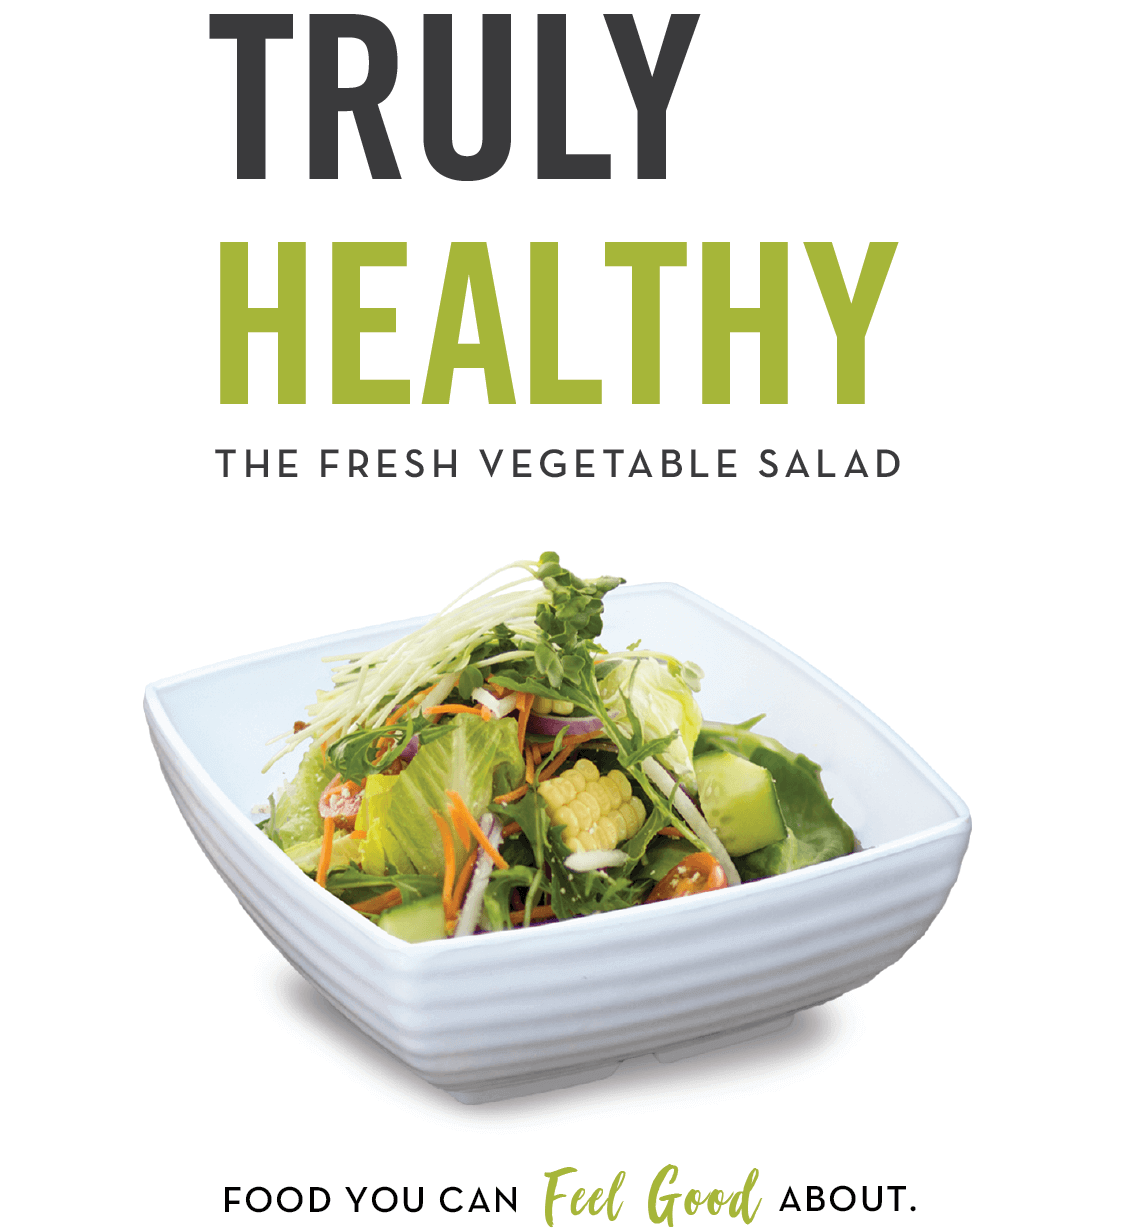 The Fresh Vegetable Salad